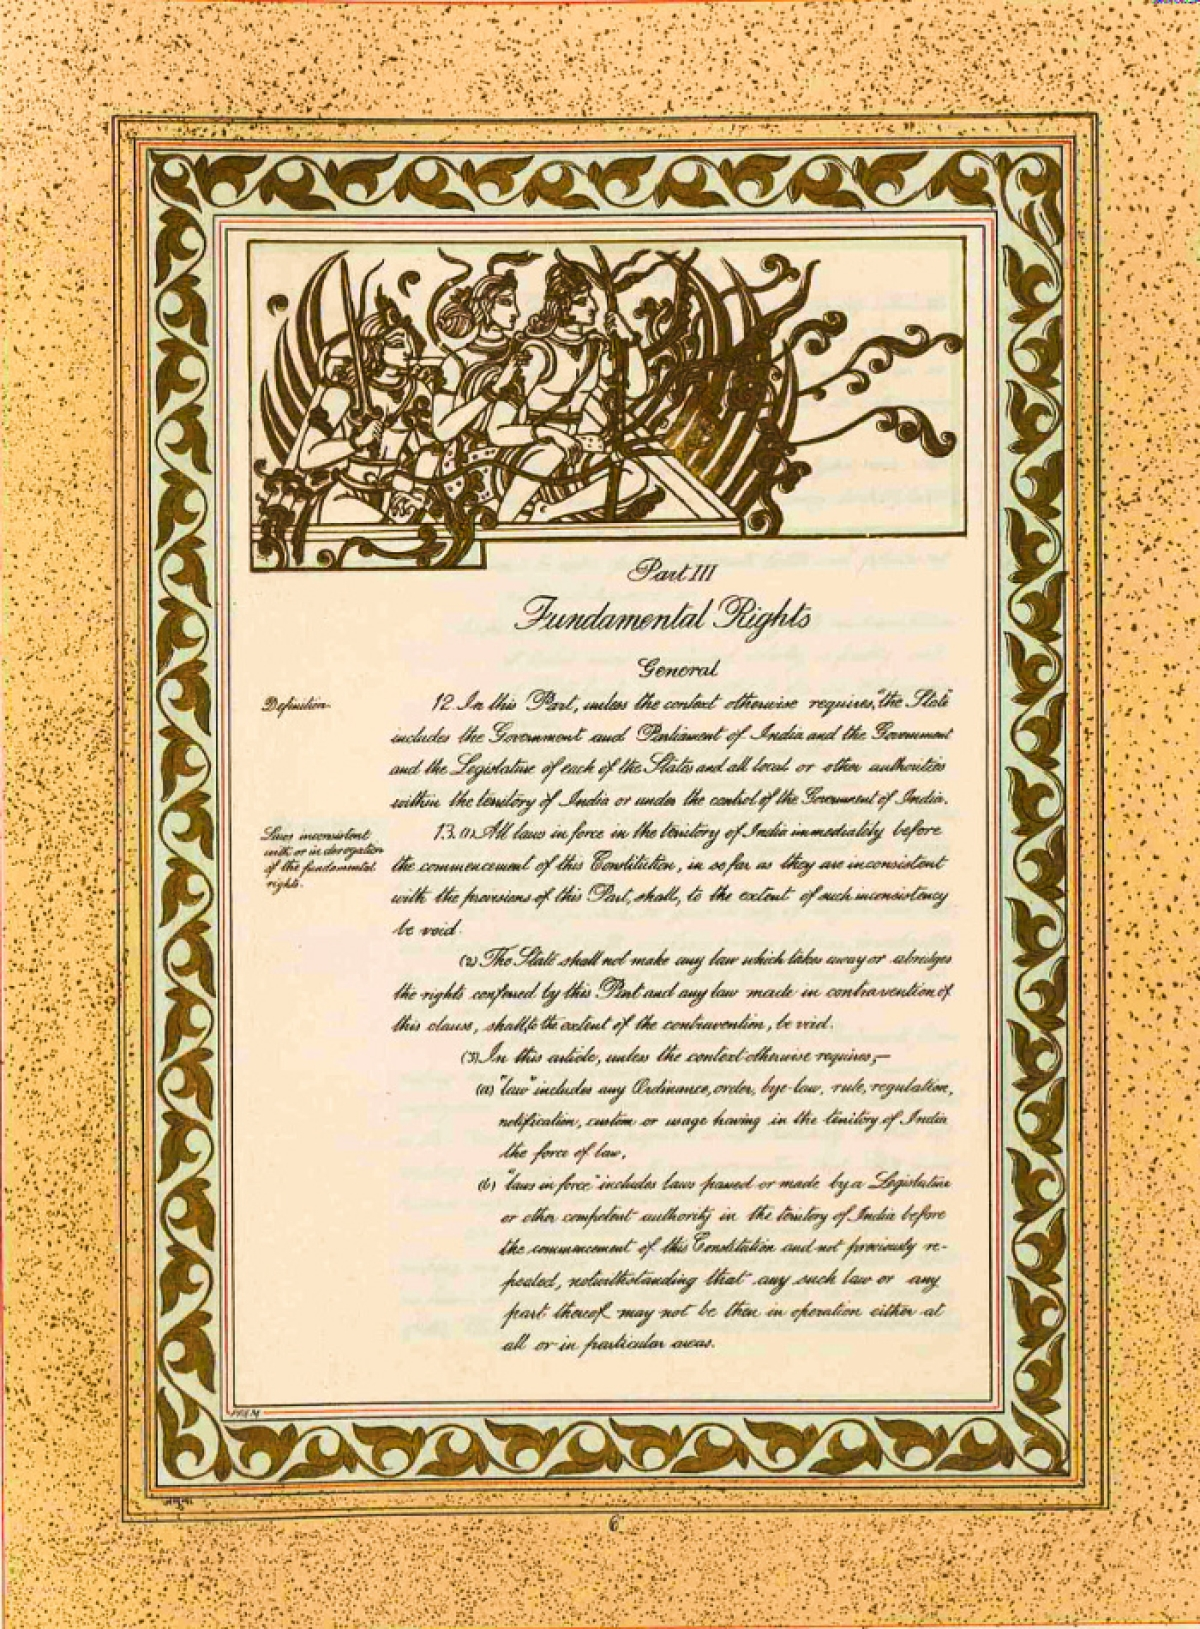 <em>Original Constitution that was hand written. Article 12 and 13 in Pat III, Fundamental Rights</em>